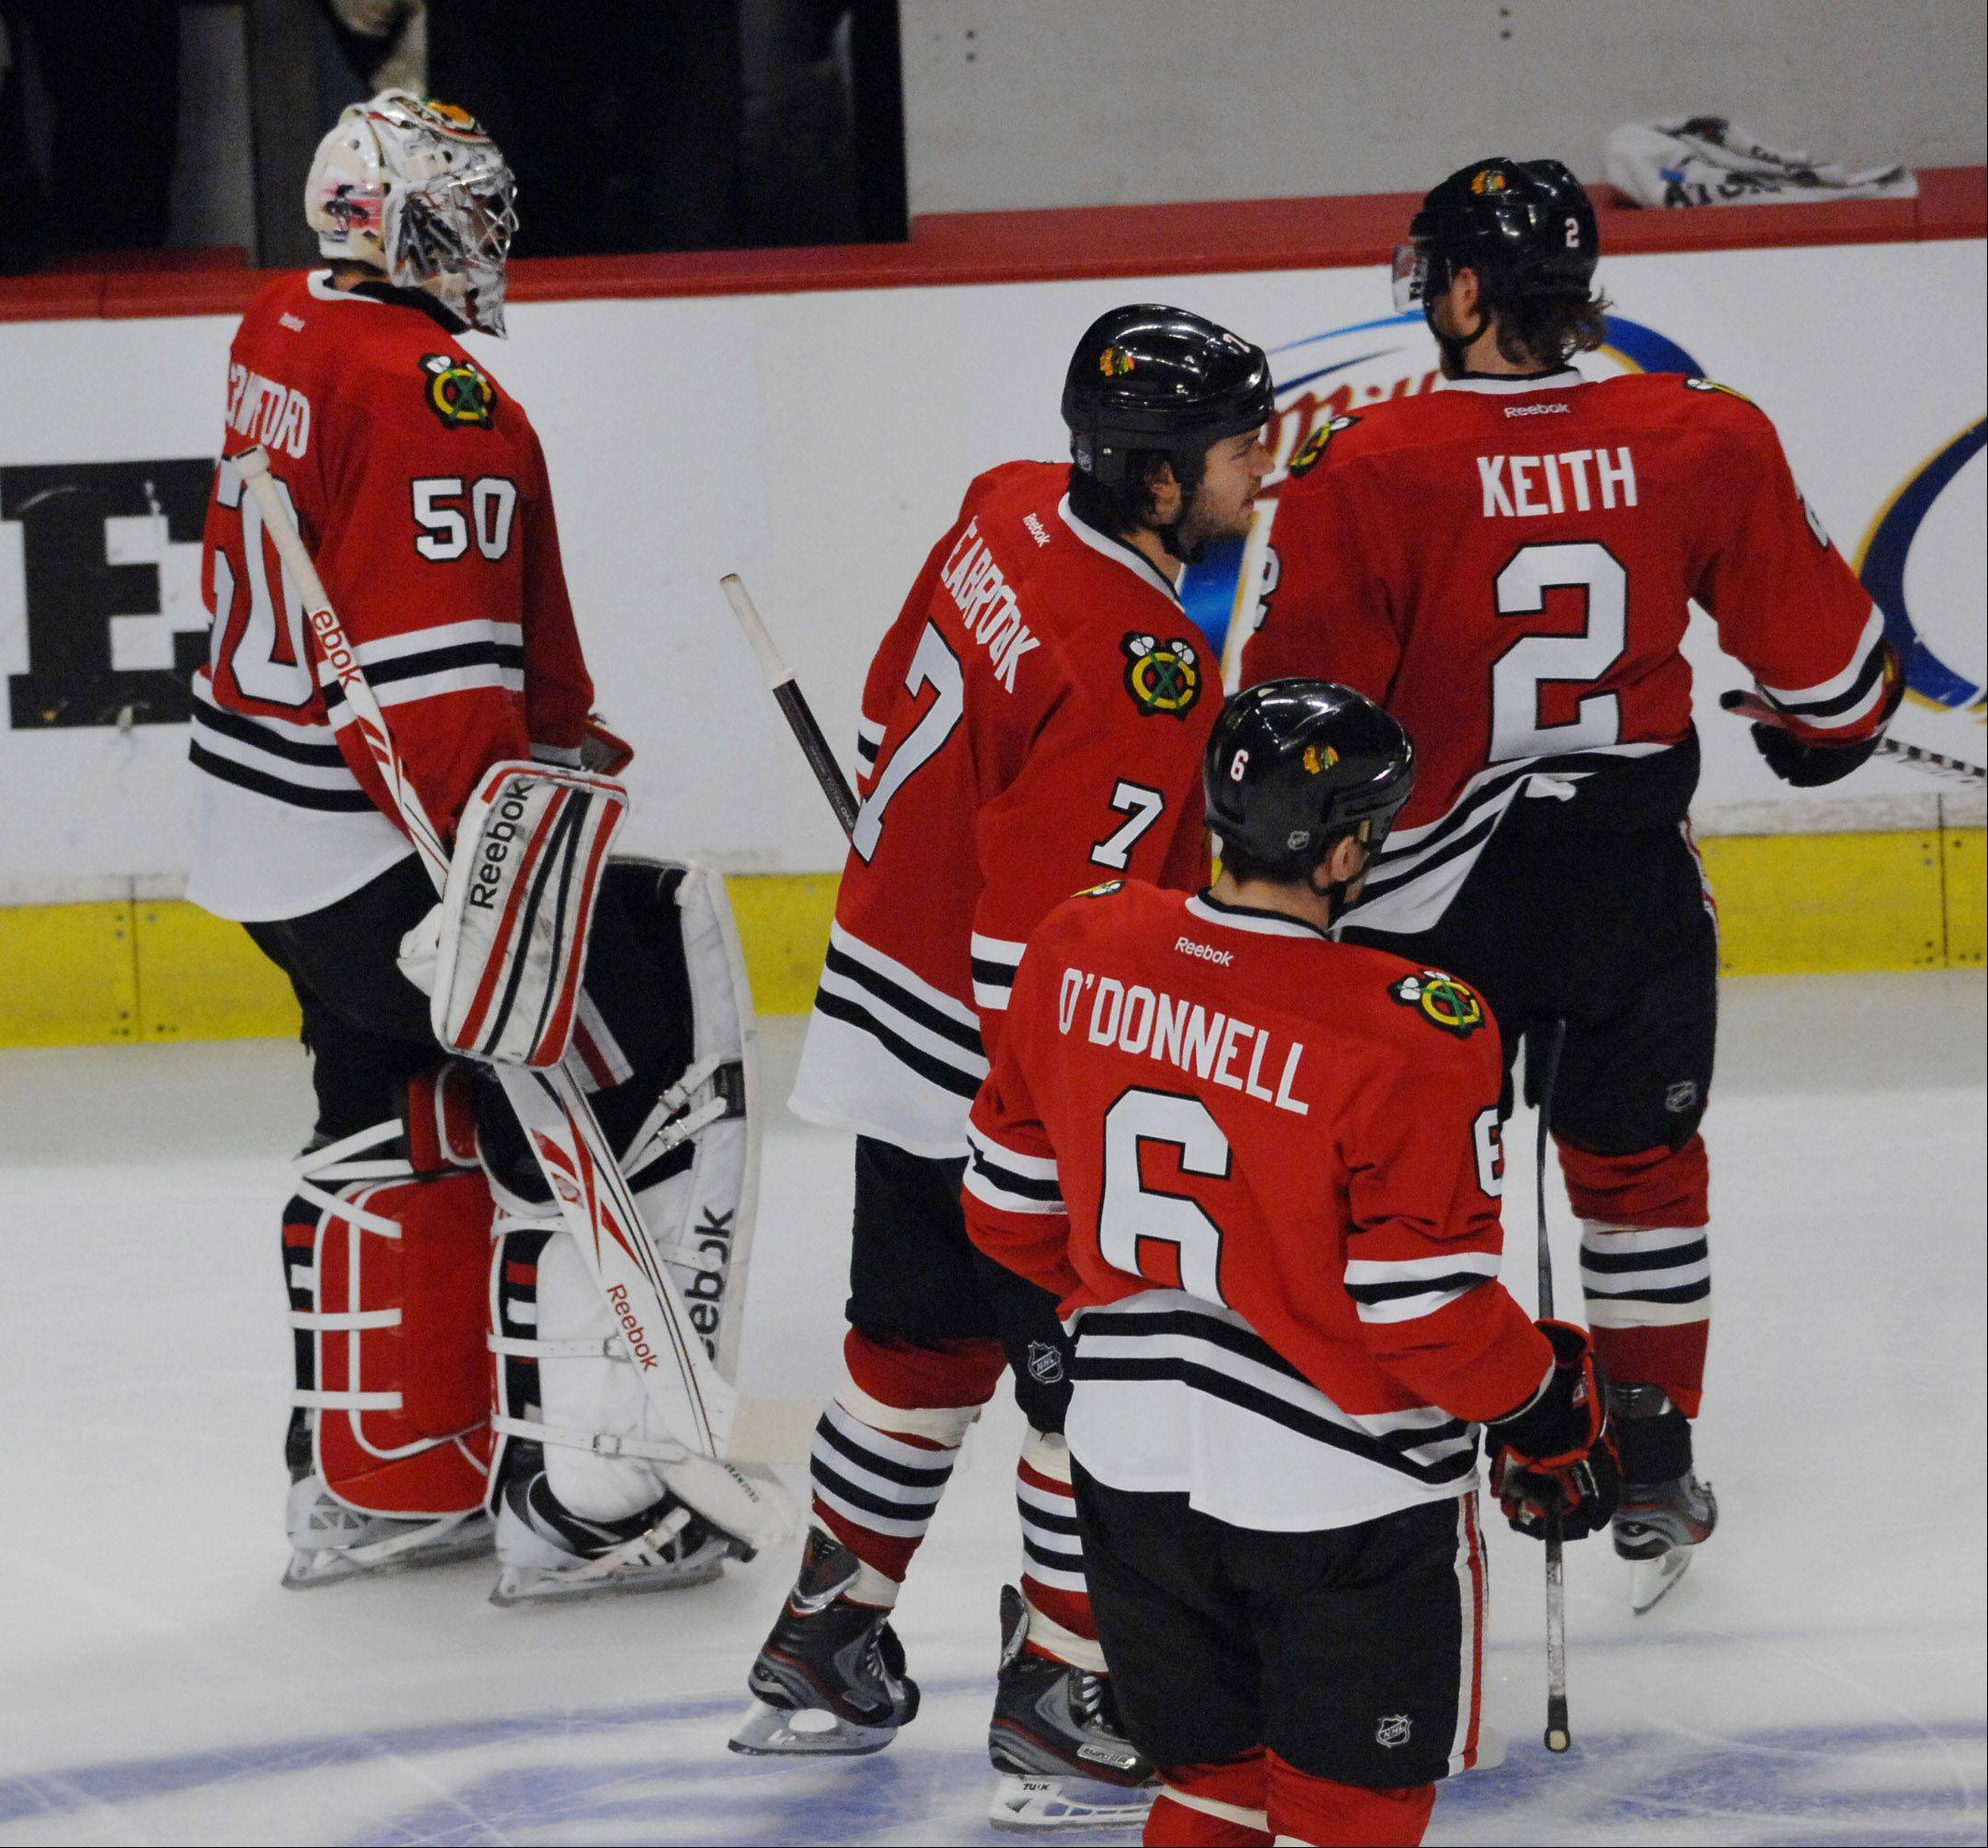 Chicago Blackhawks' goalie Corey Crawford leaves the ice with his teammates after losing in overtime.